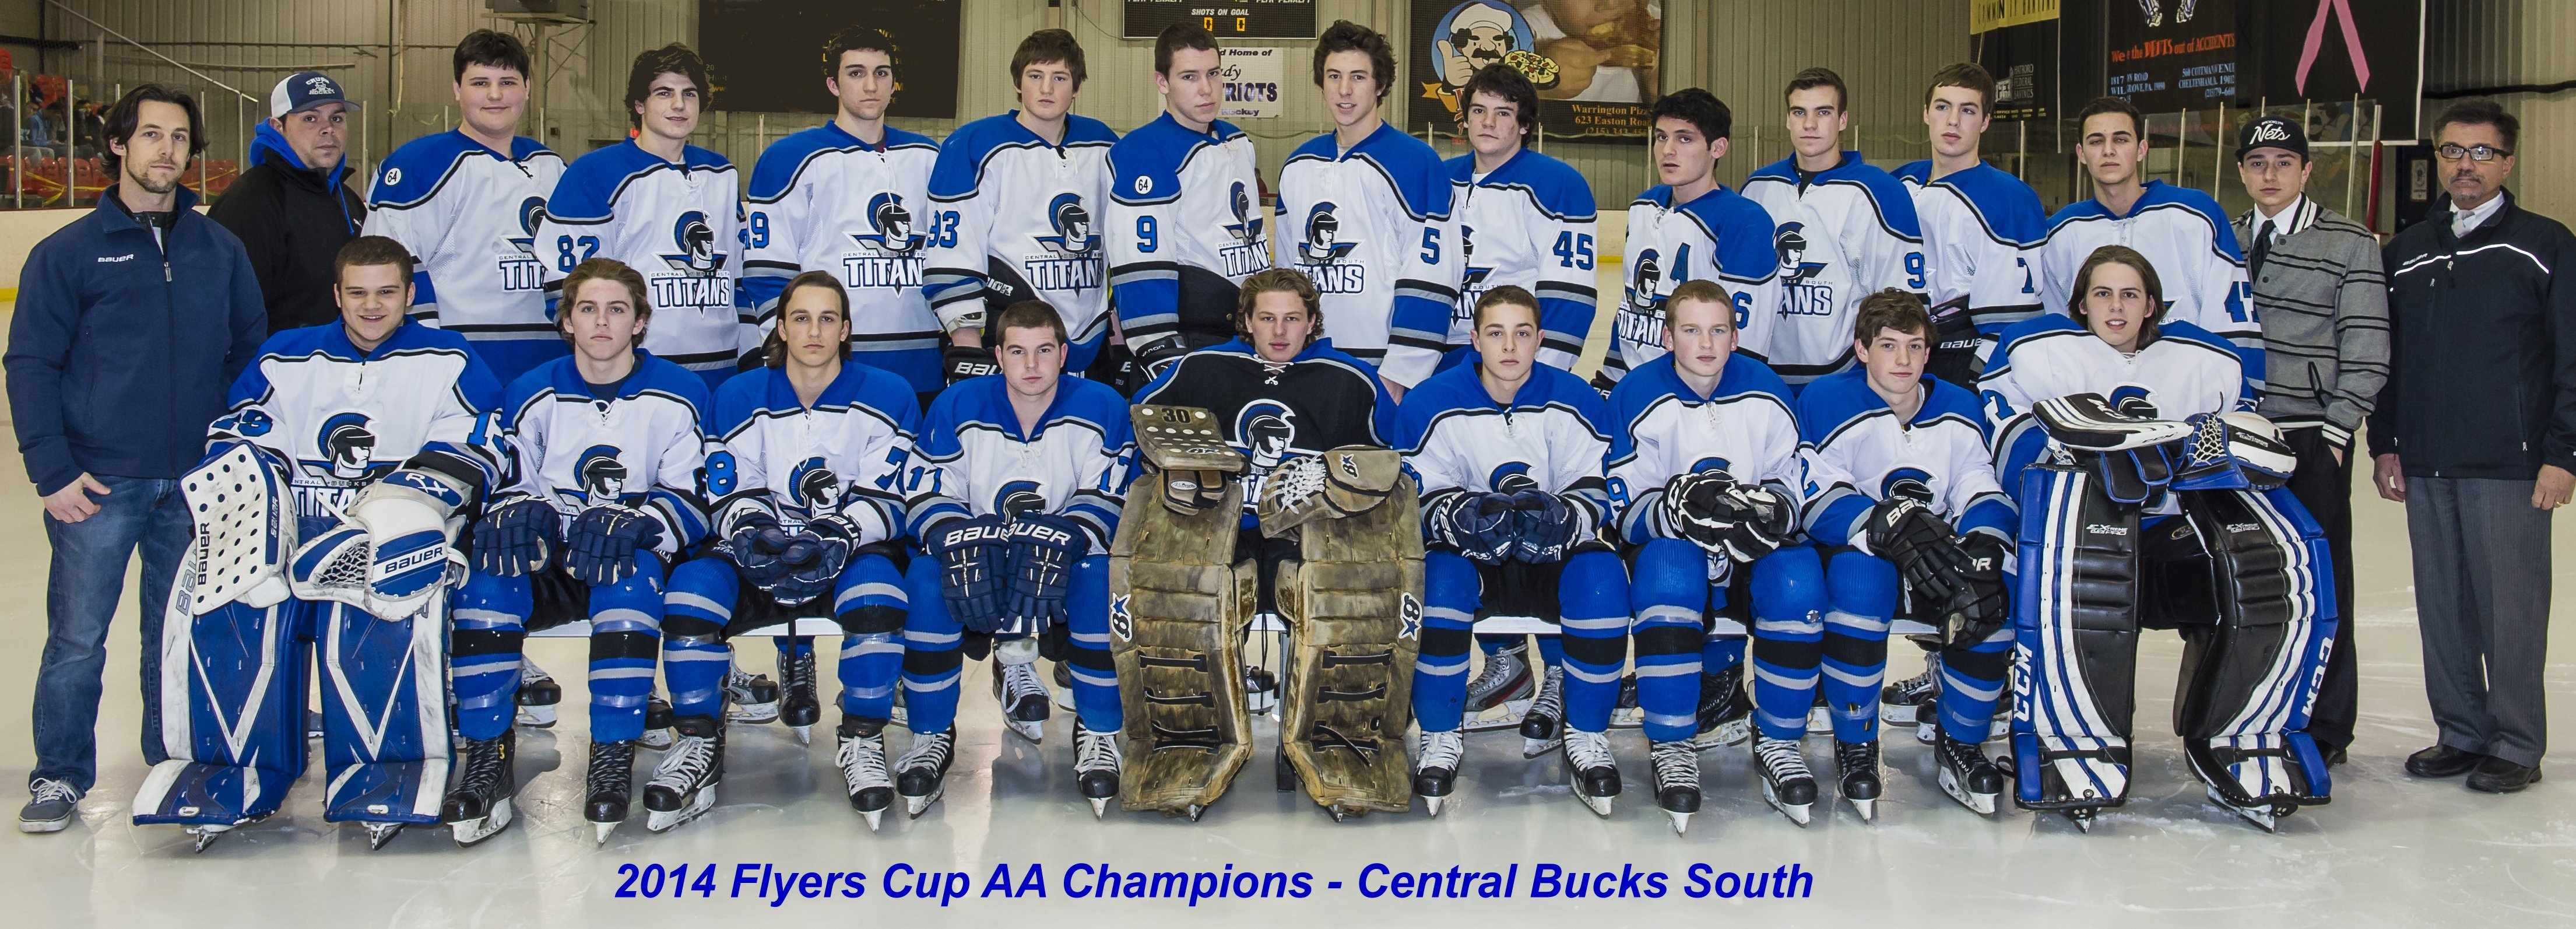 2014 Central Bucks South Titans